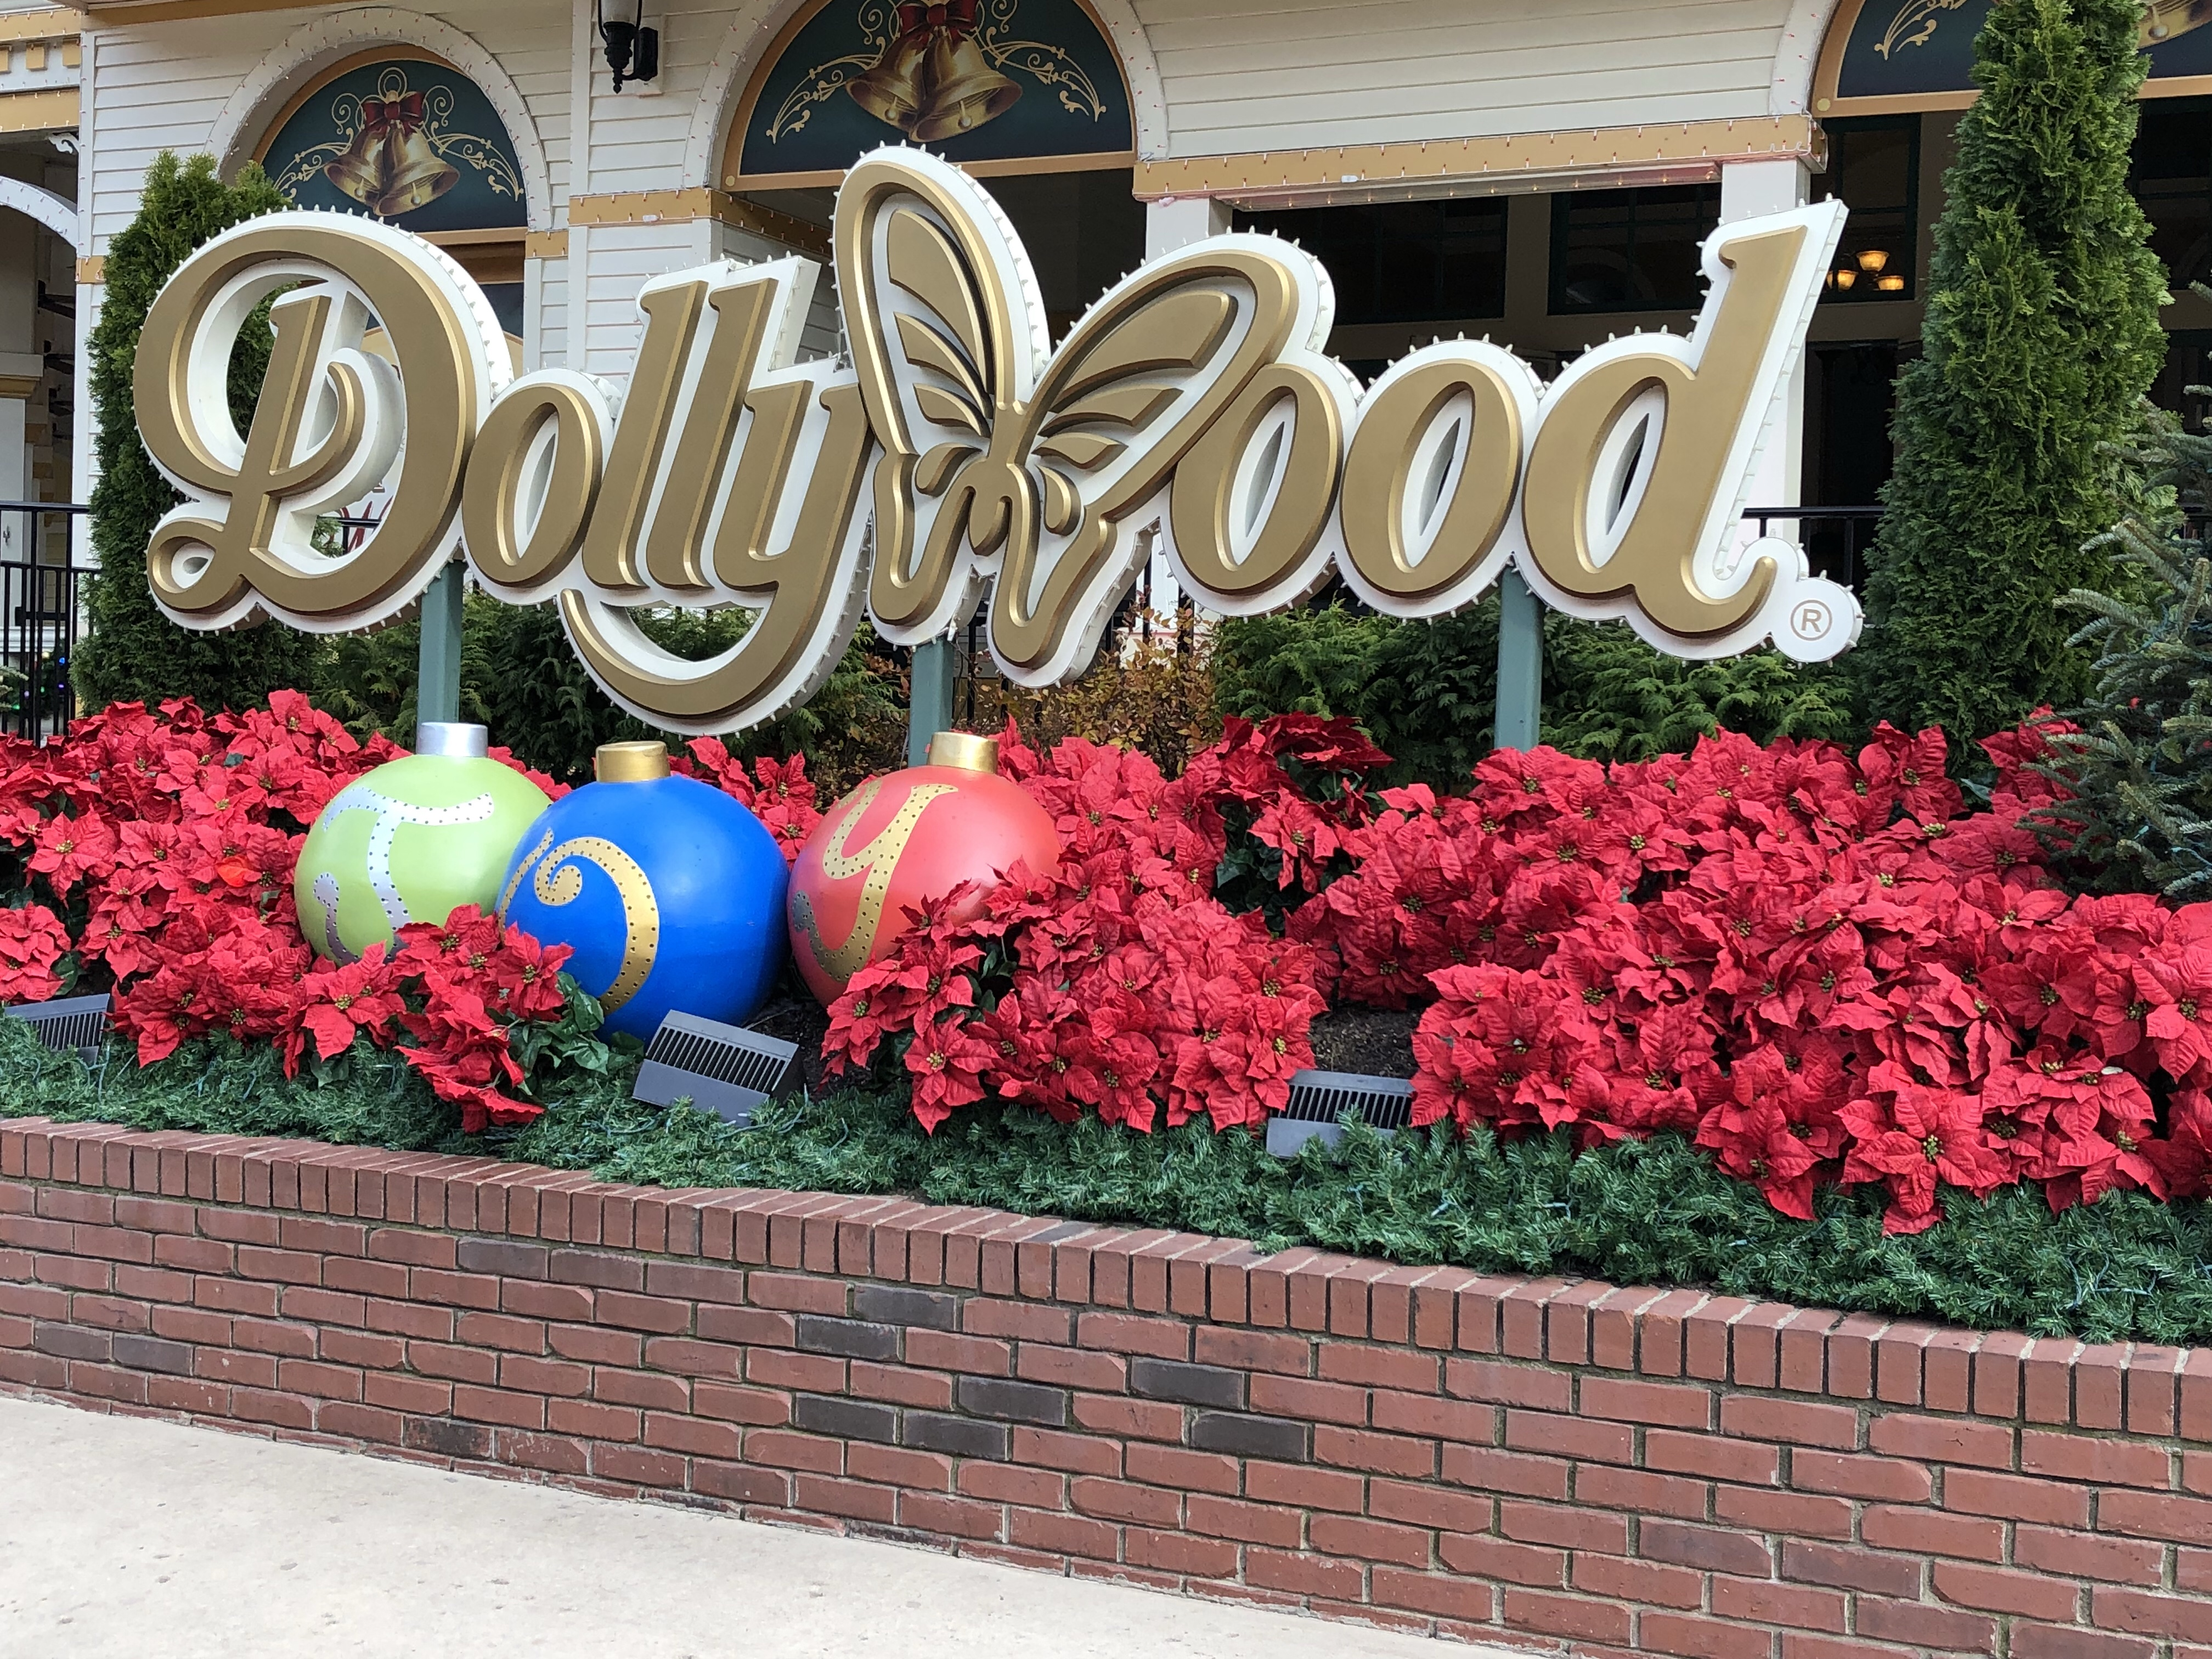 if you visit dollywood any time of year youll know the park is completely stunning a perfect mix of southern charm and a gorgeous mountain backdrop